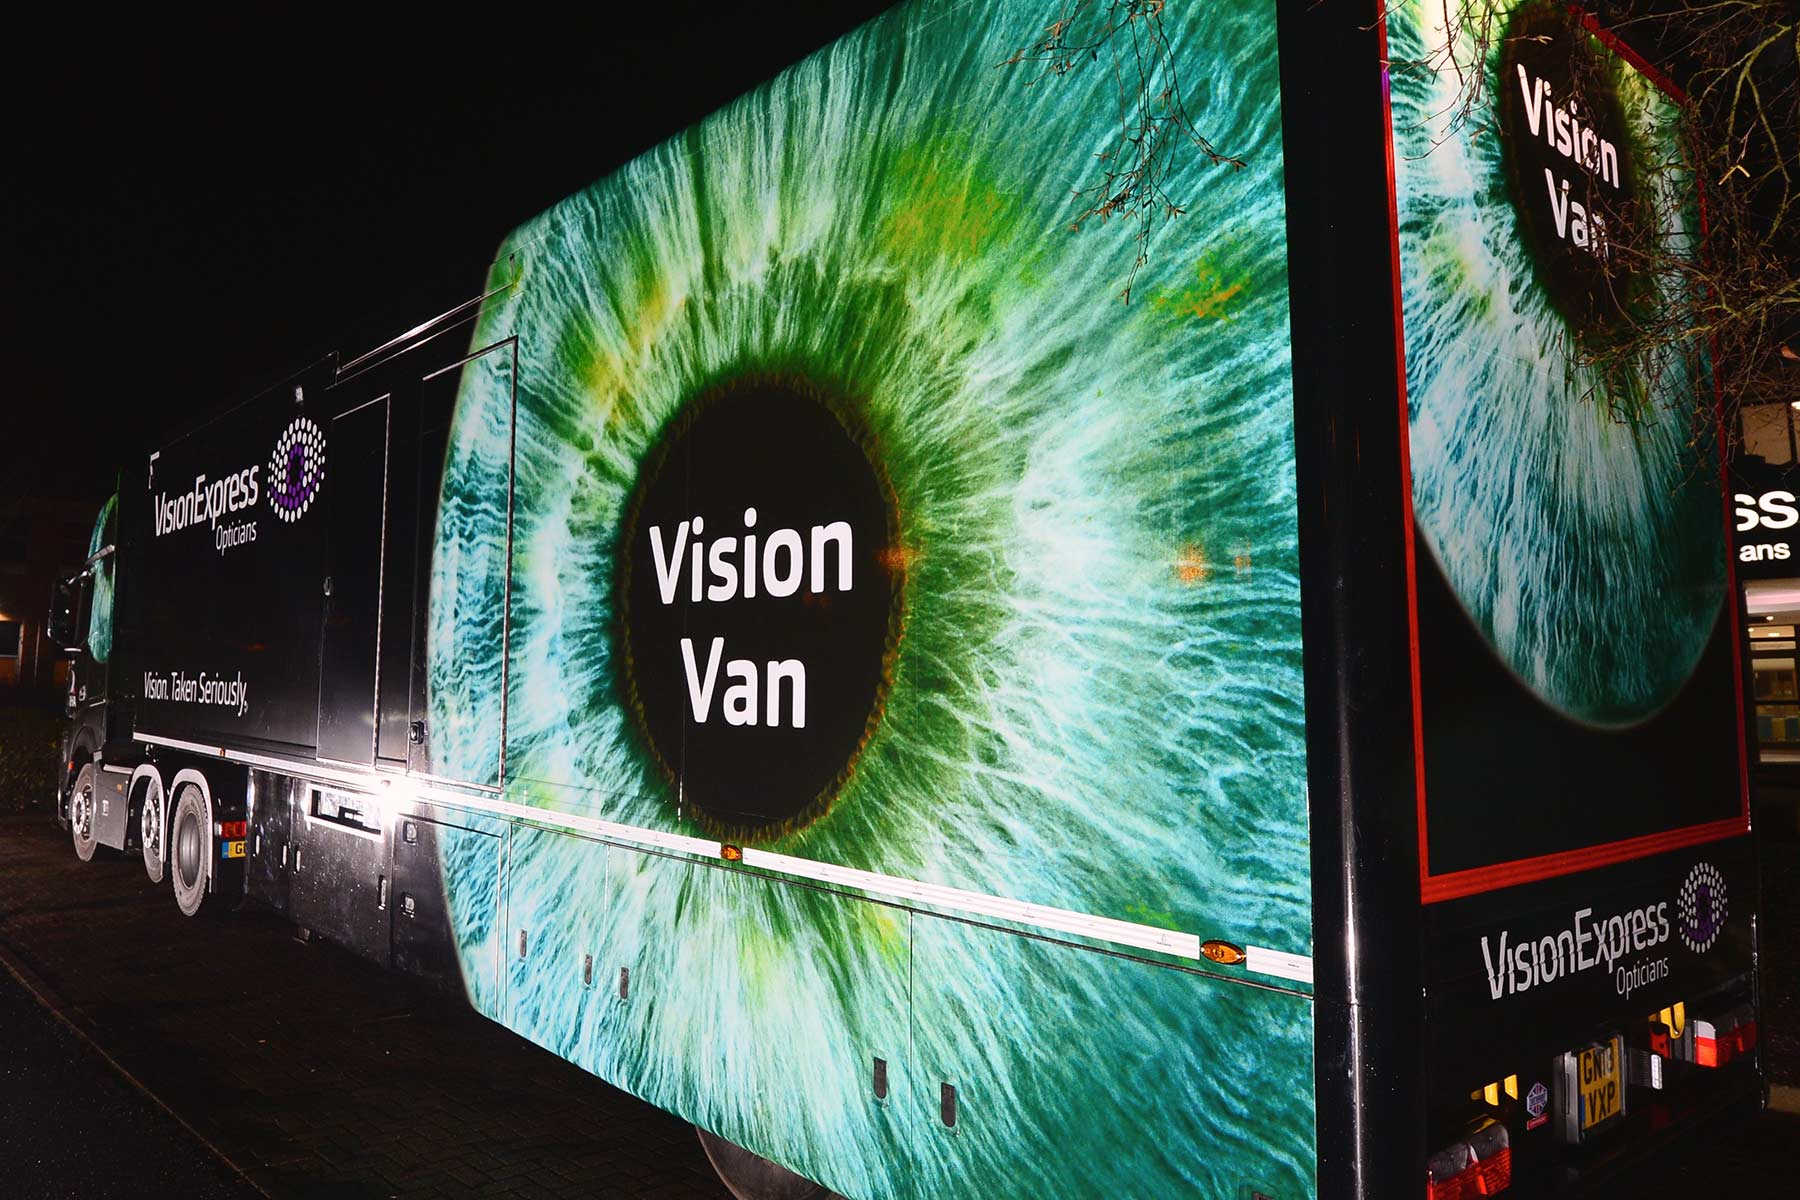 Lorry with Vision express vehiclke graphics